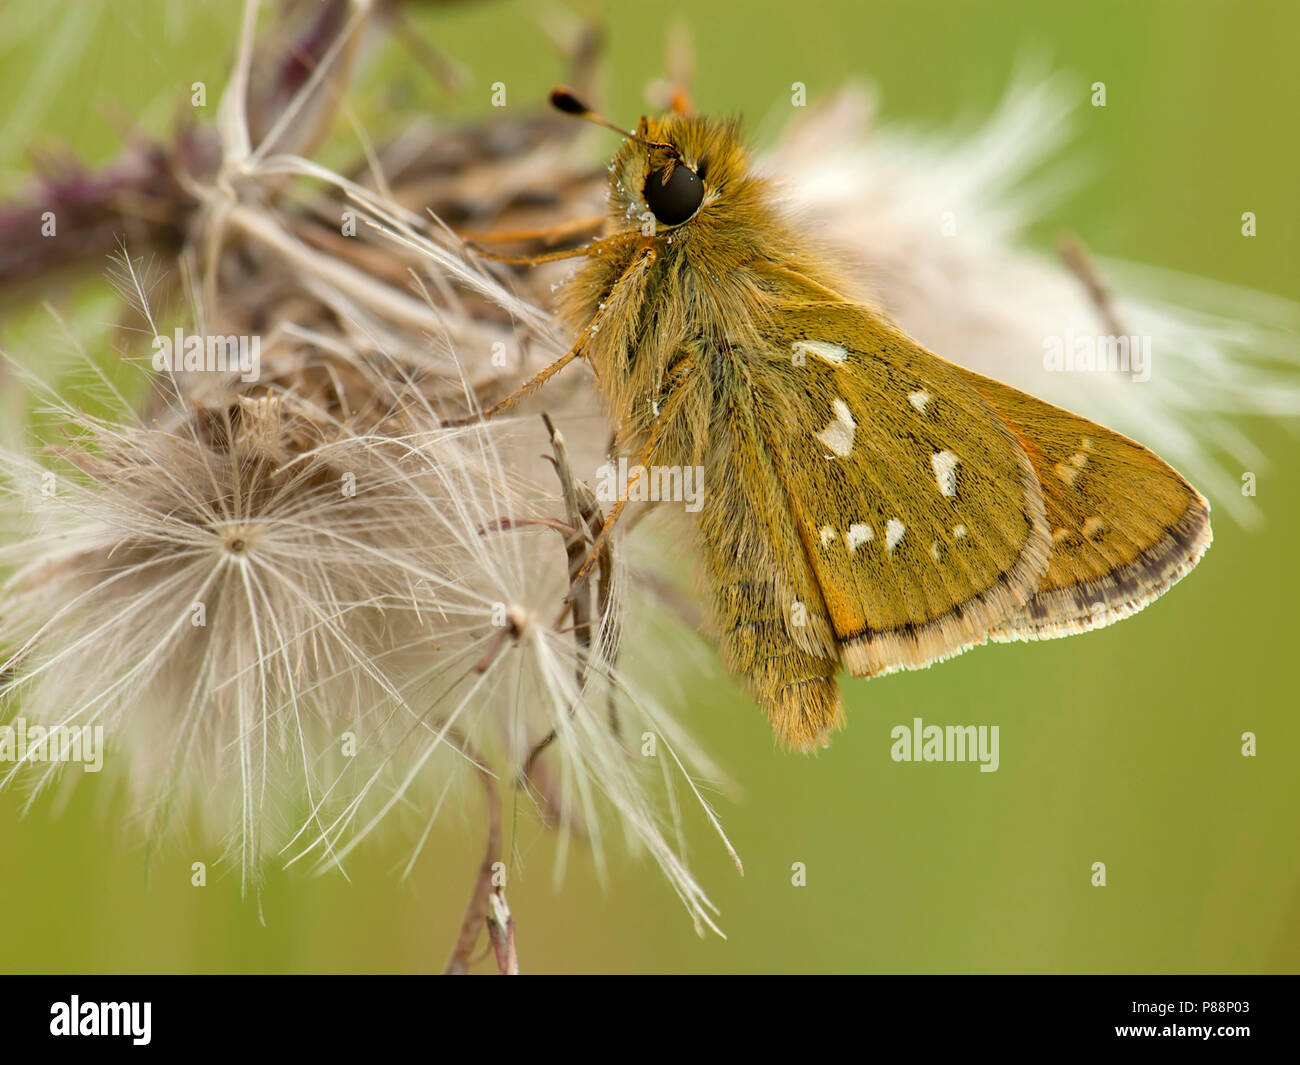 Kommavlinder / Silver-spotted Skipper (Hesperia comma) Stock Photo